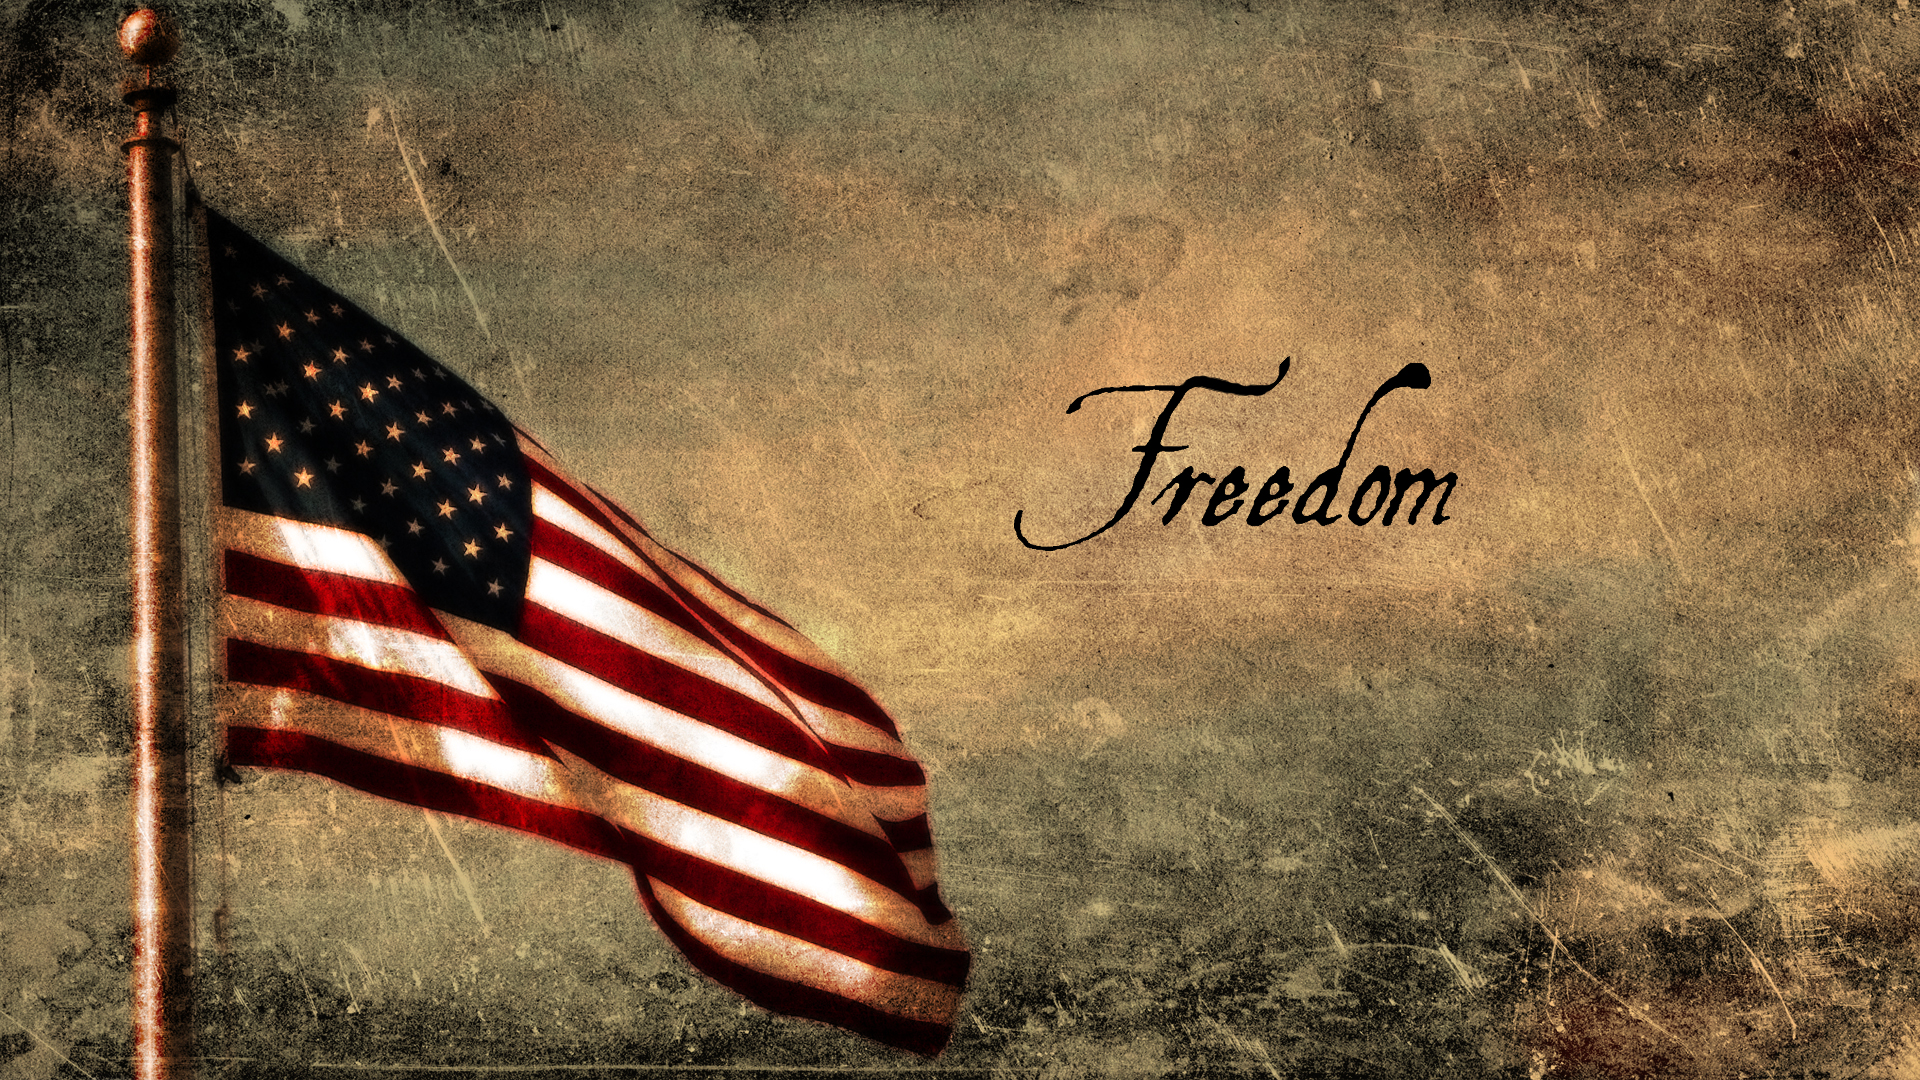 Wallpaper Of The Day Freedom   Common Sense Evaluation 1920x1080